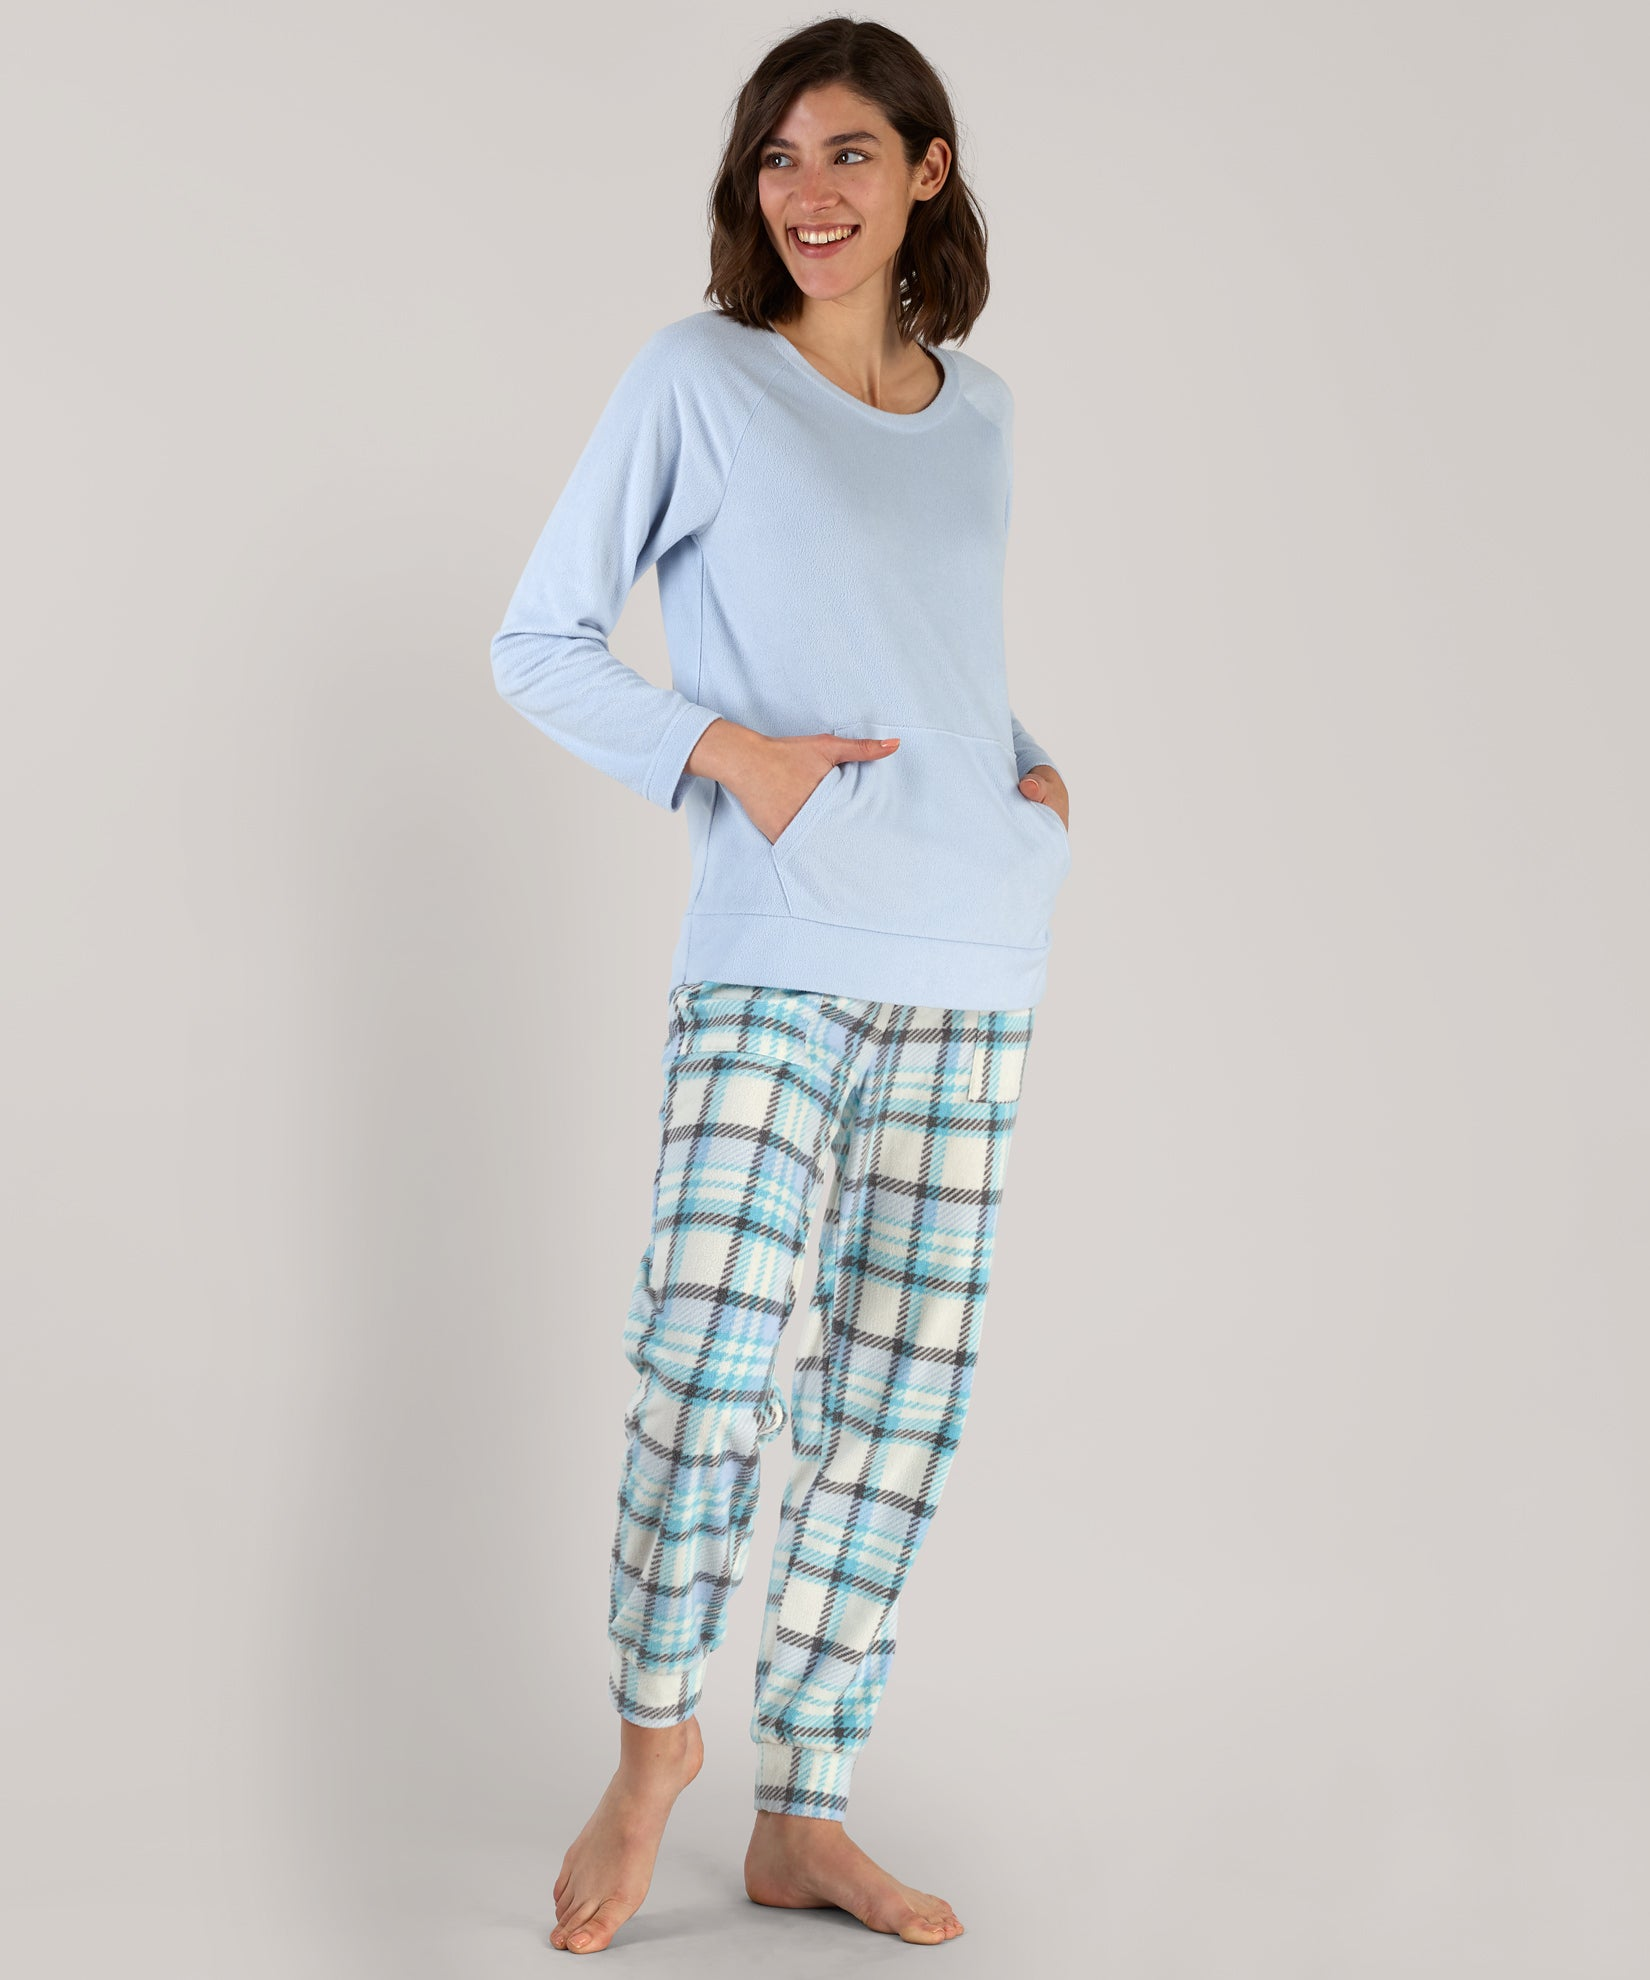 Arctic Plaid Jogger Lounge Set - Arctic Plaid Jogger Lounge Set